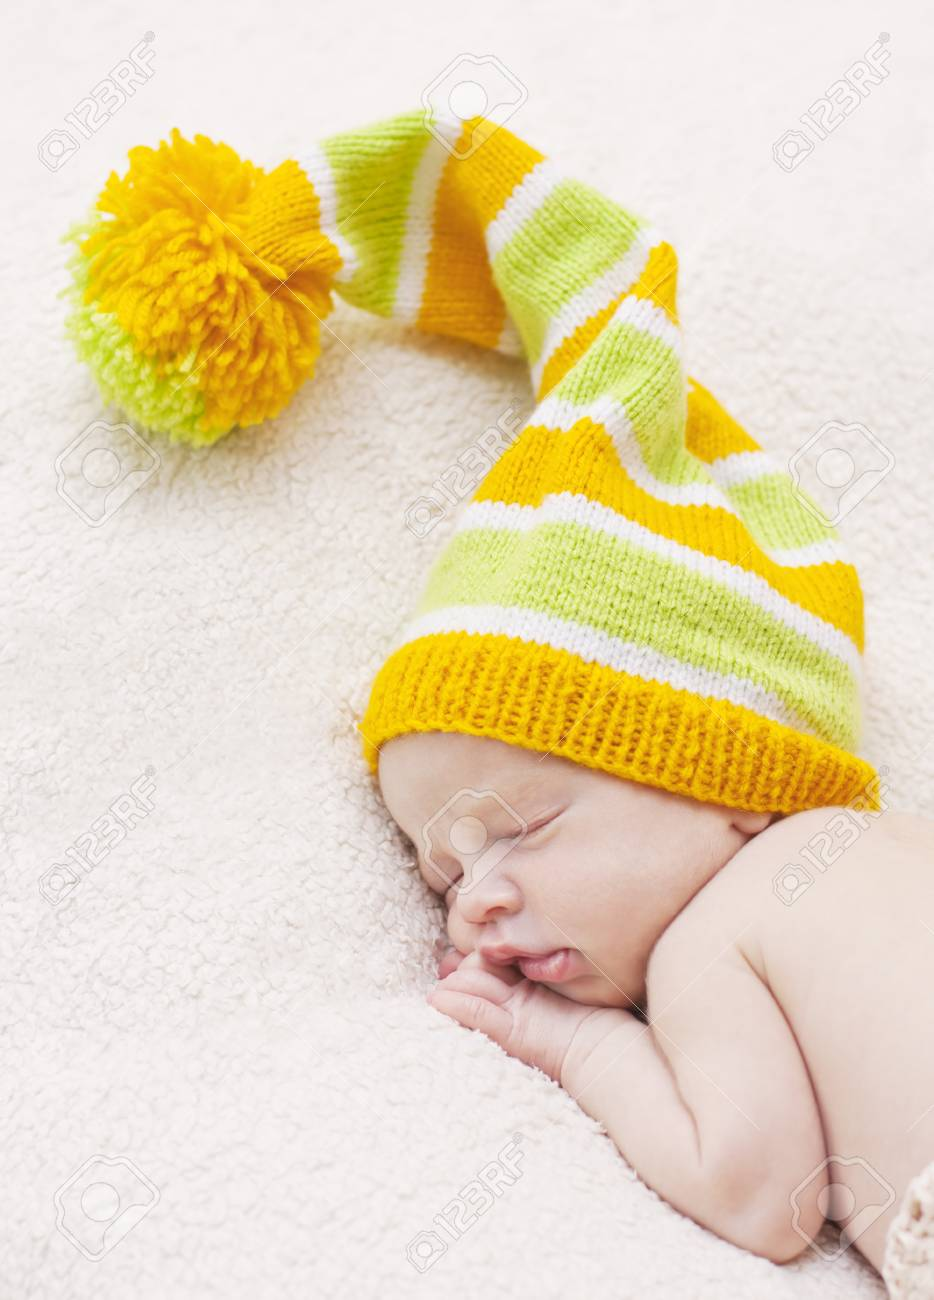 Close-up sleeping newbornon a white background with bright hat Stock Photo - 22578963